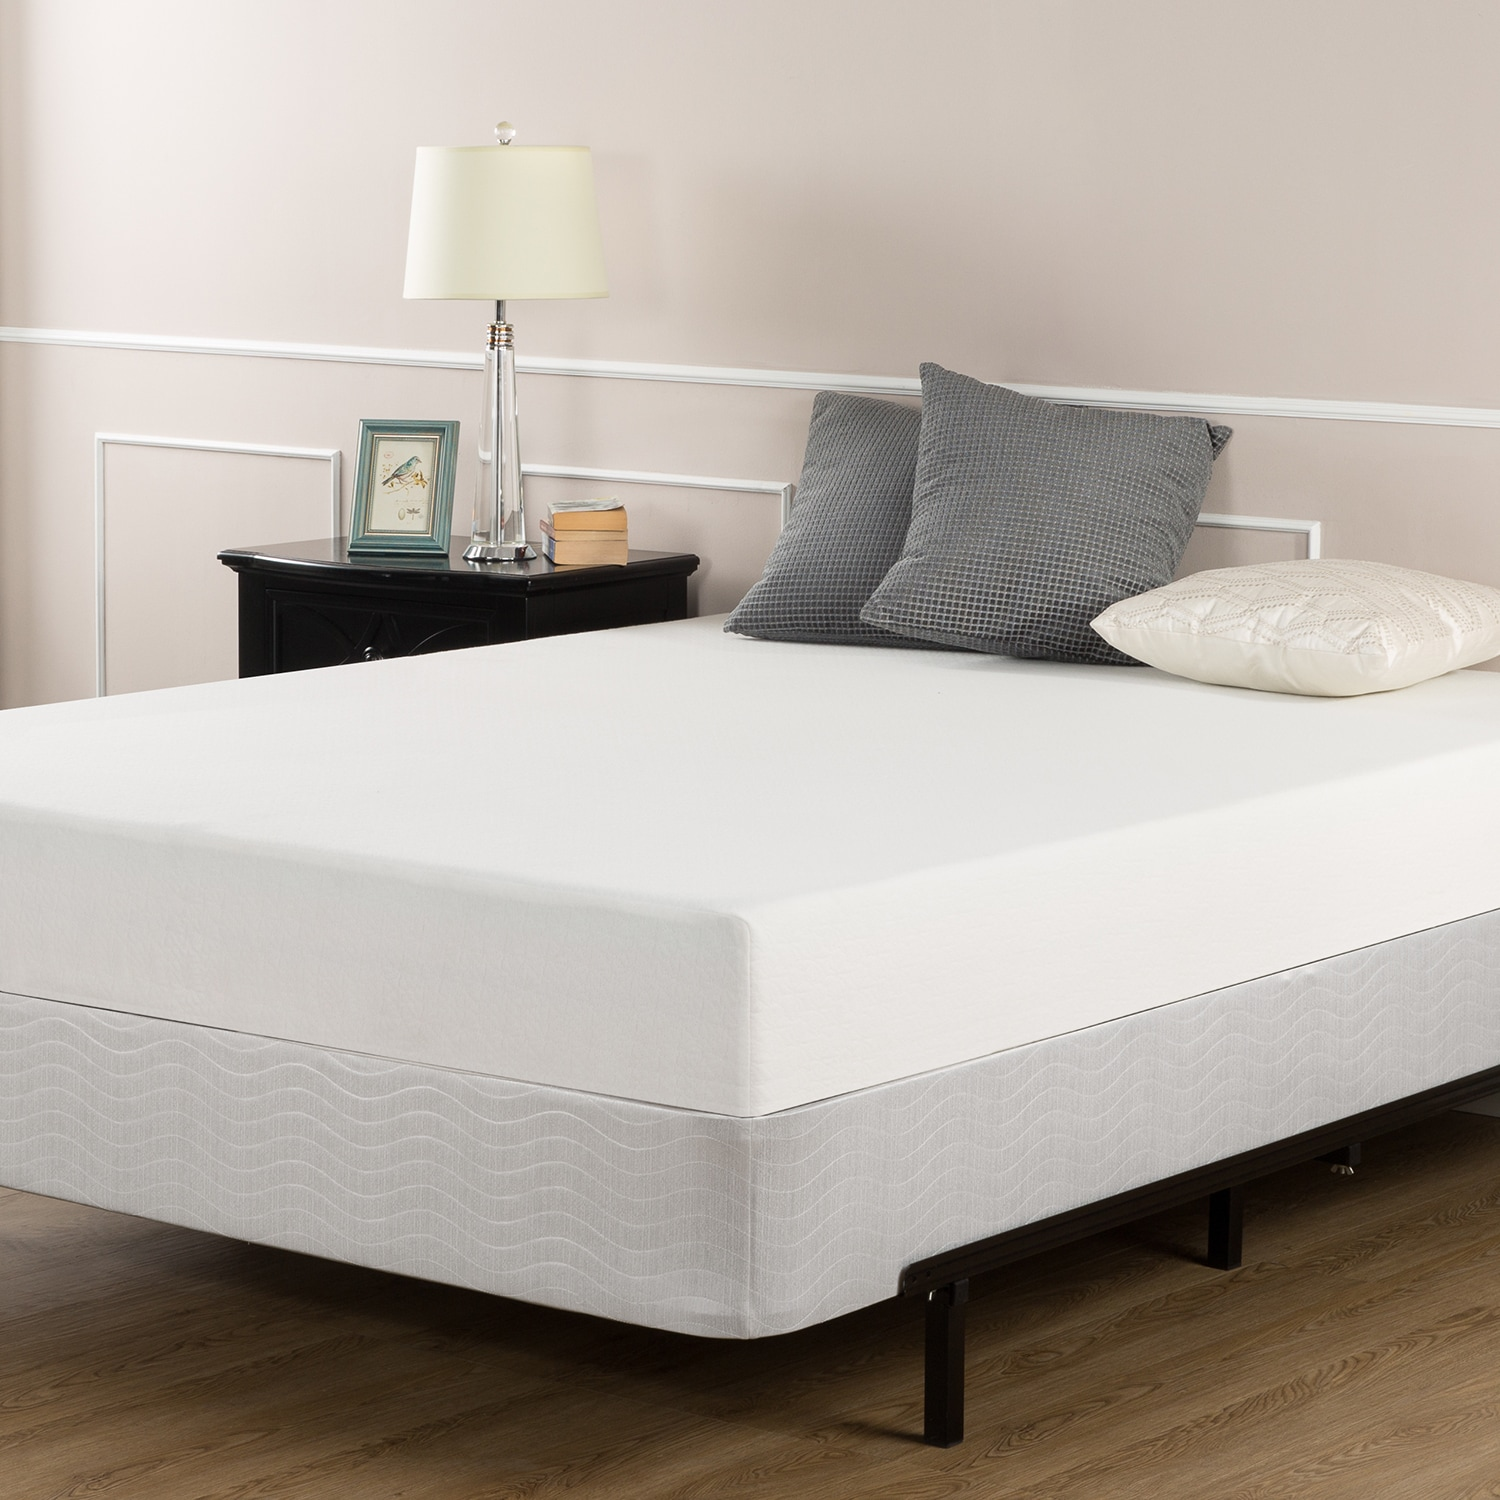 Shop Priage By Zinus 6 Inch Twin Size Memory Foam Mattress And Box